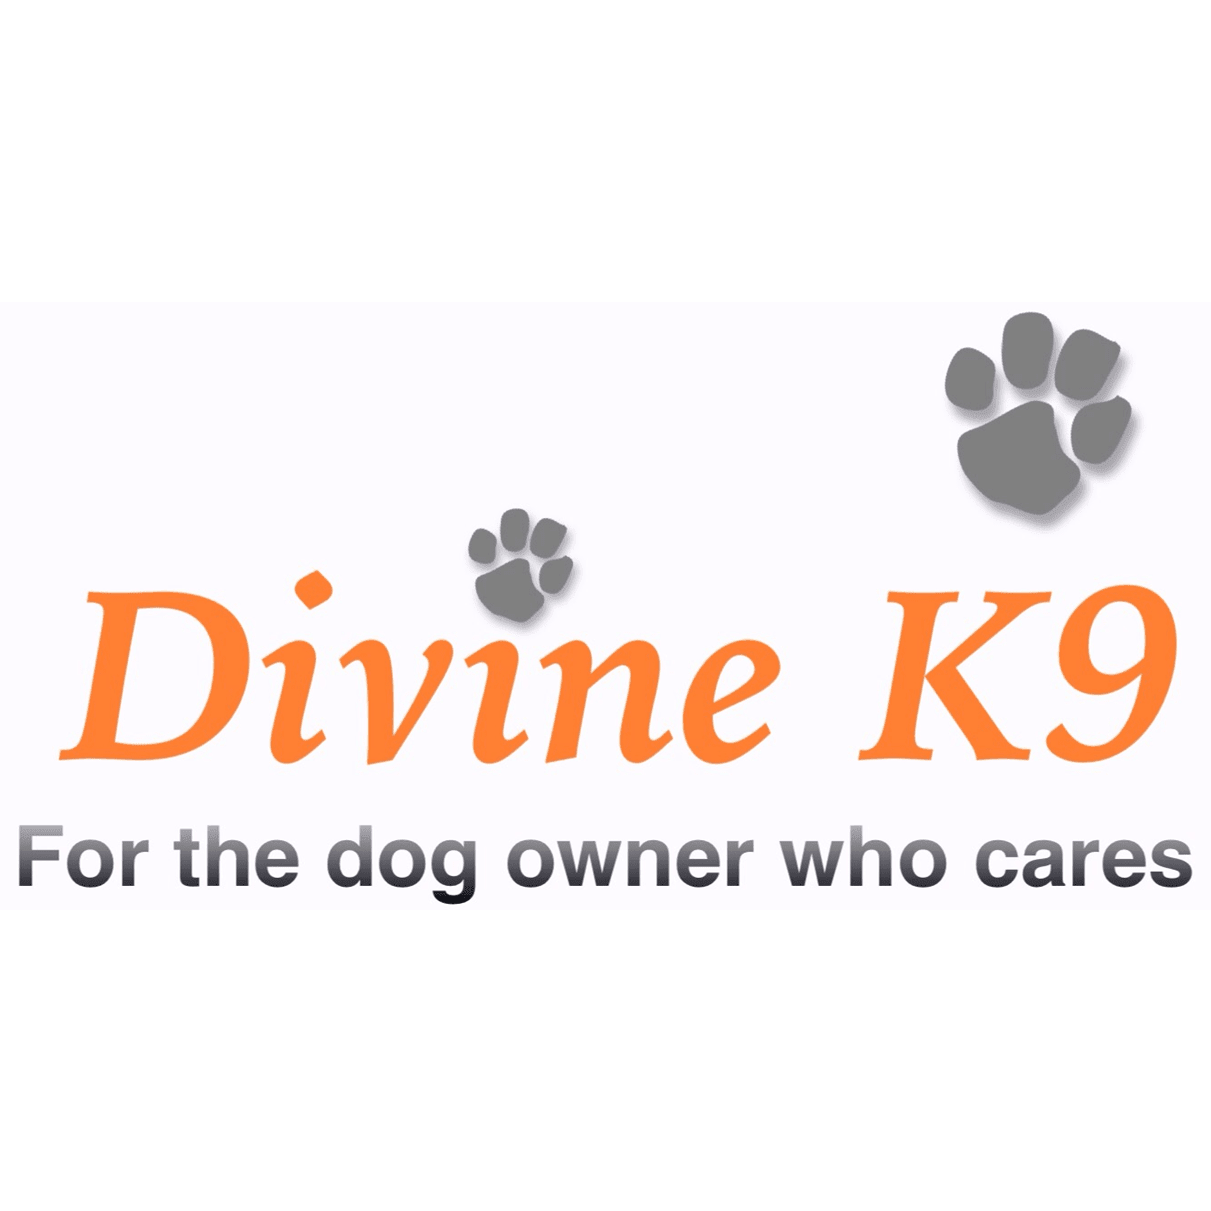 Divine K9, Boutique Dog Hotel, Bespoke Dog Grooming, Tailored Dog Care | 10 Church St, Southport PR9 0QT | +44 7398 763331